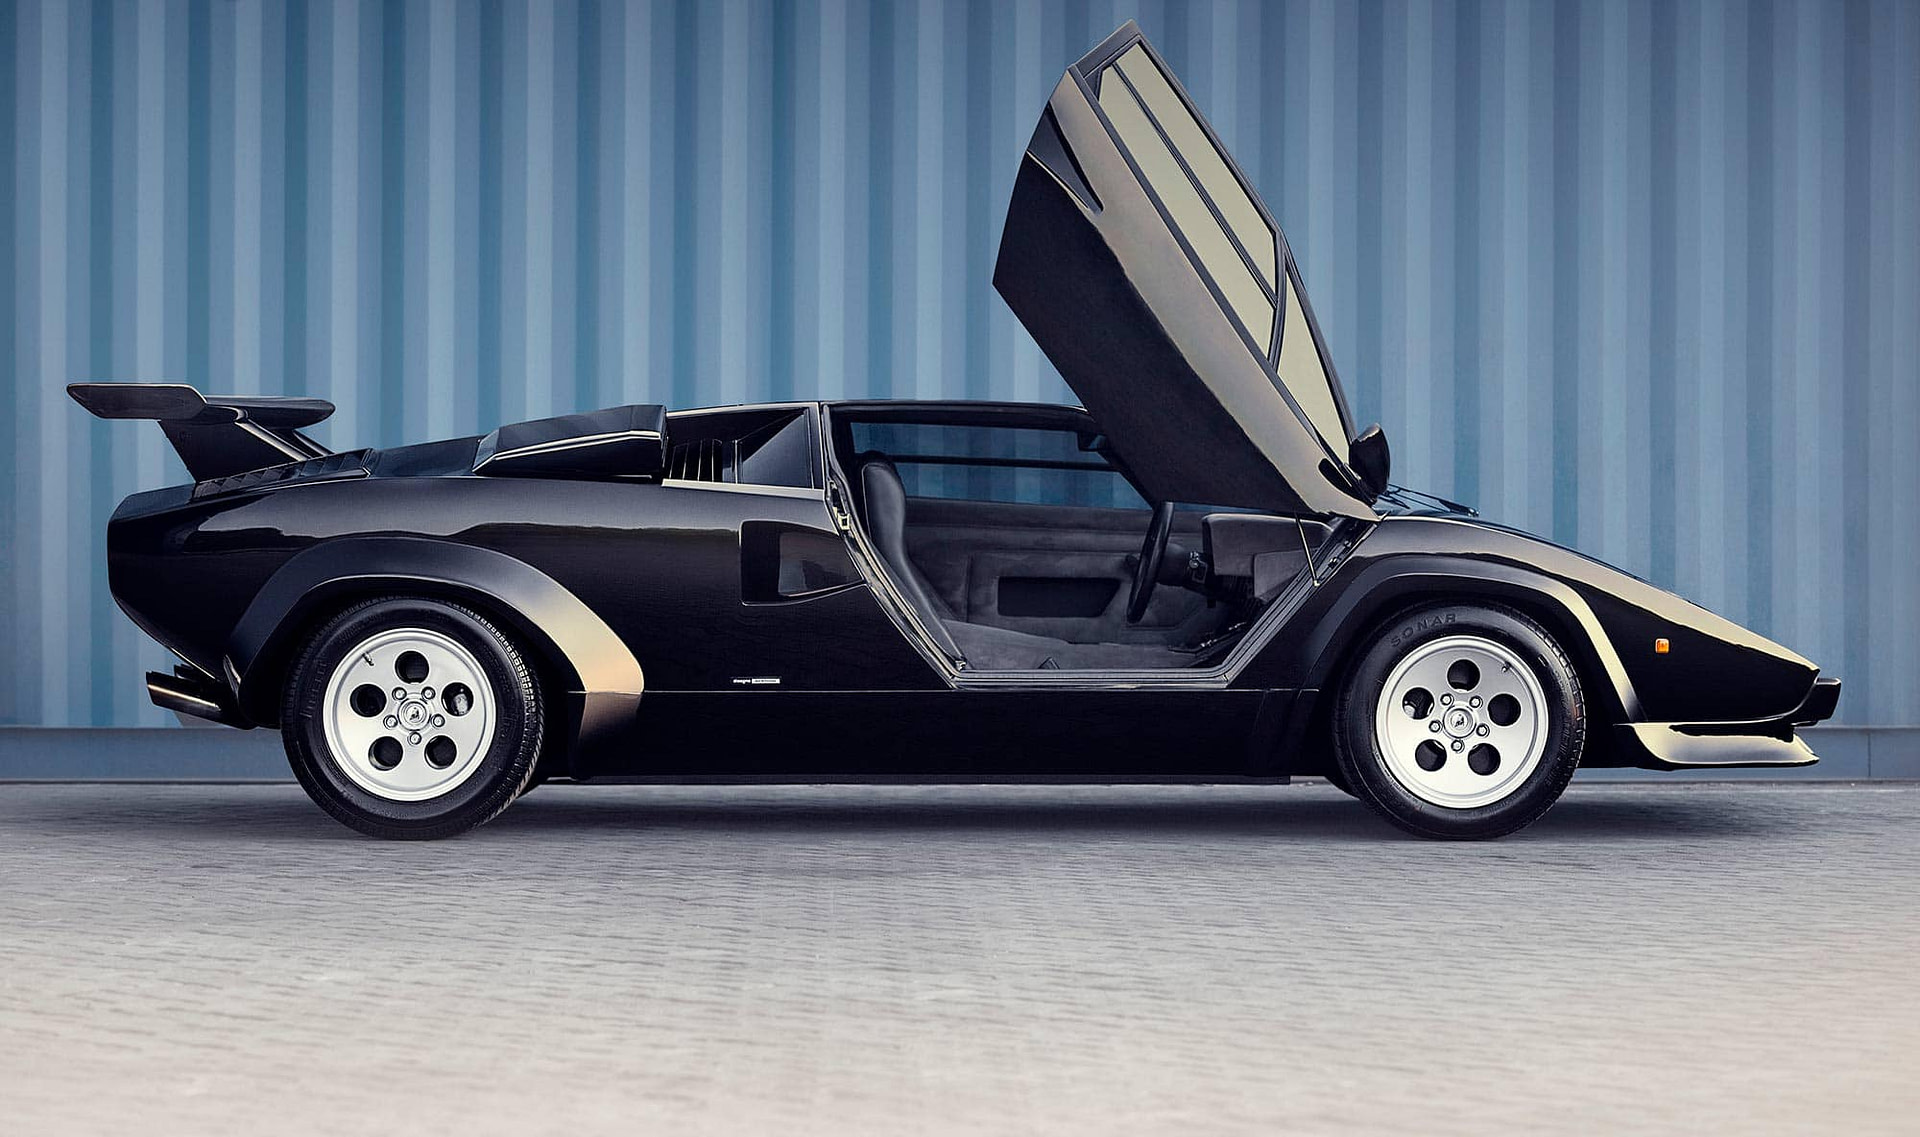 lamborghini countach sv black sports car photographed on location in johannesburg south africa